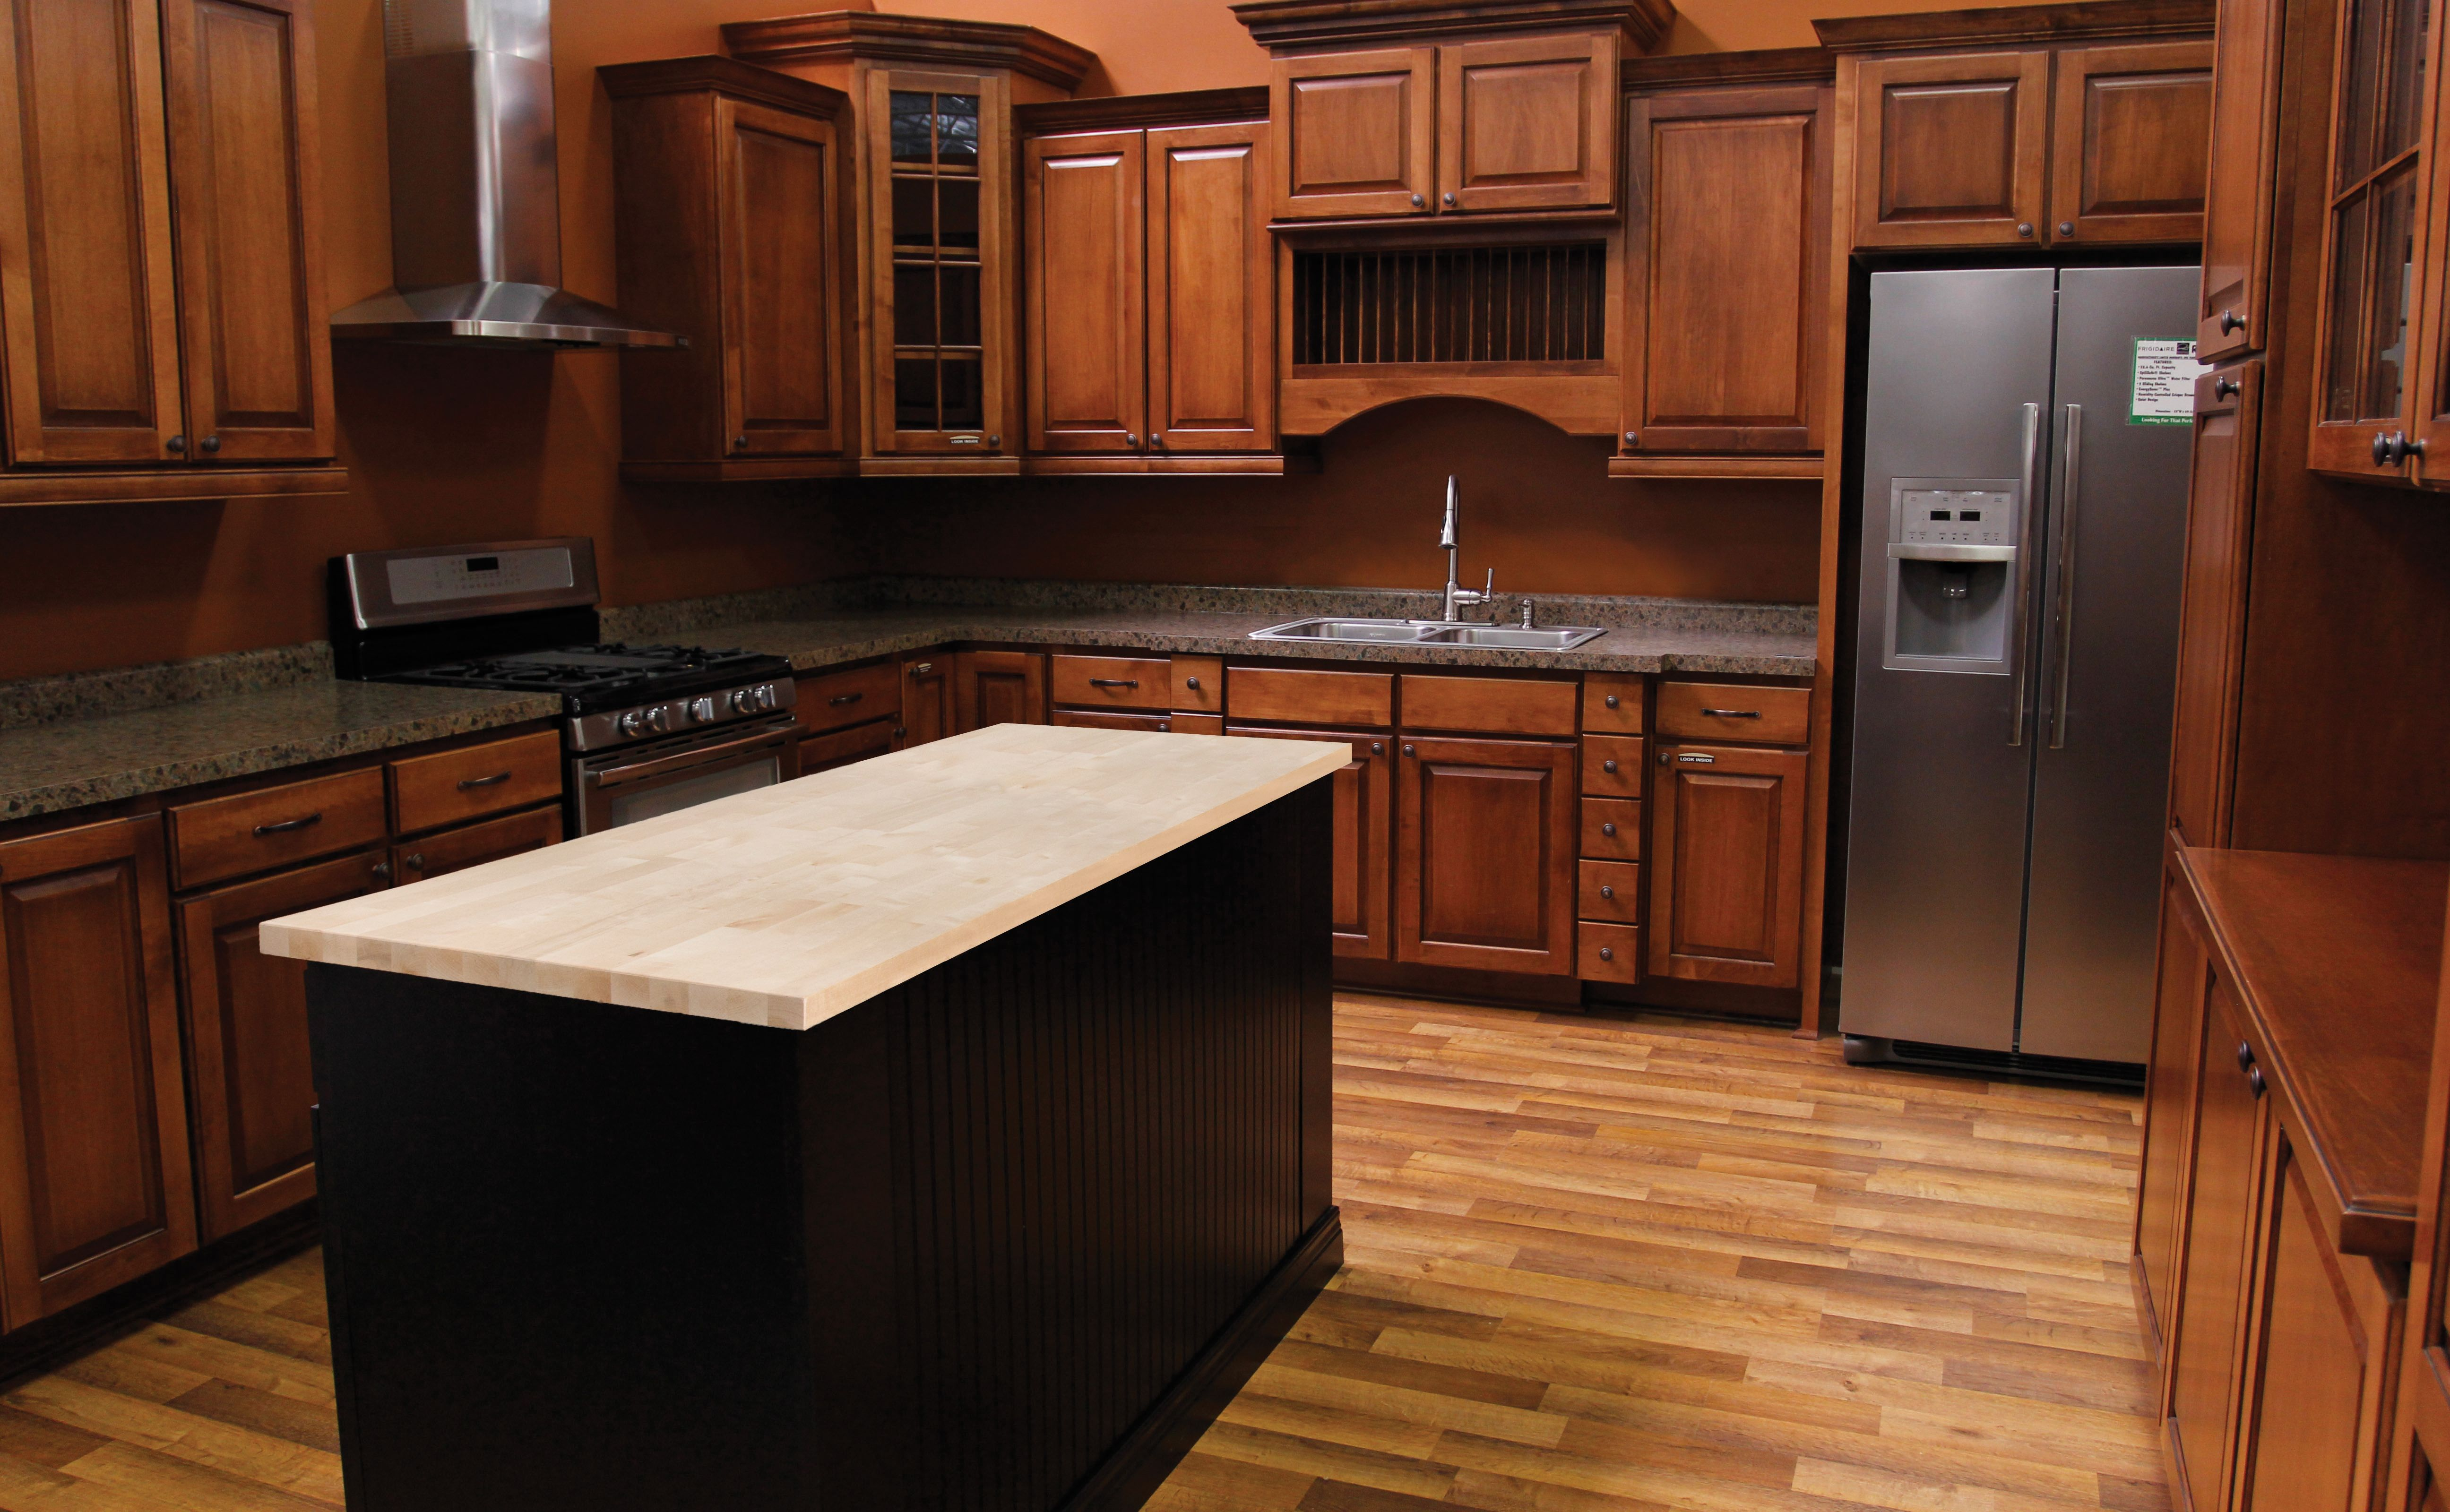 A Butcher Block Top Makes A Great Countertop For Kitchen